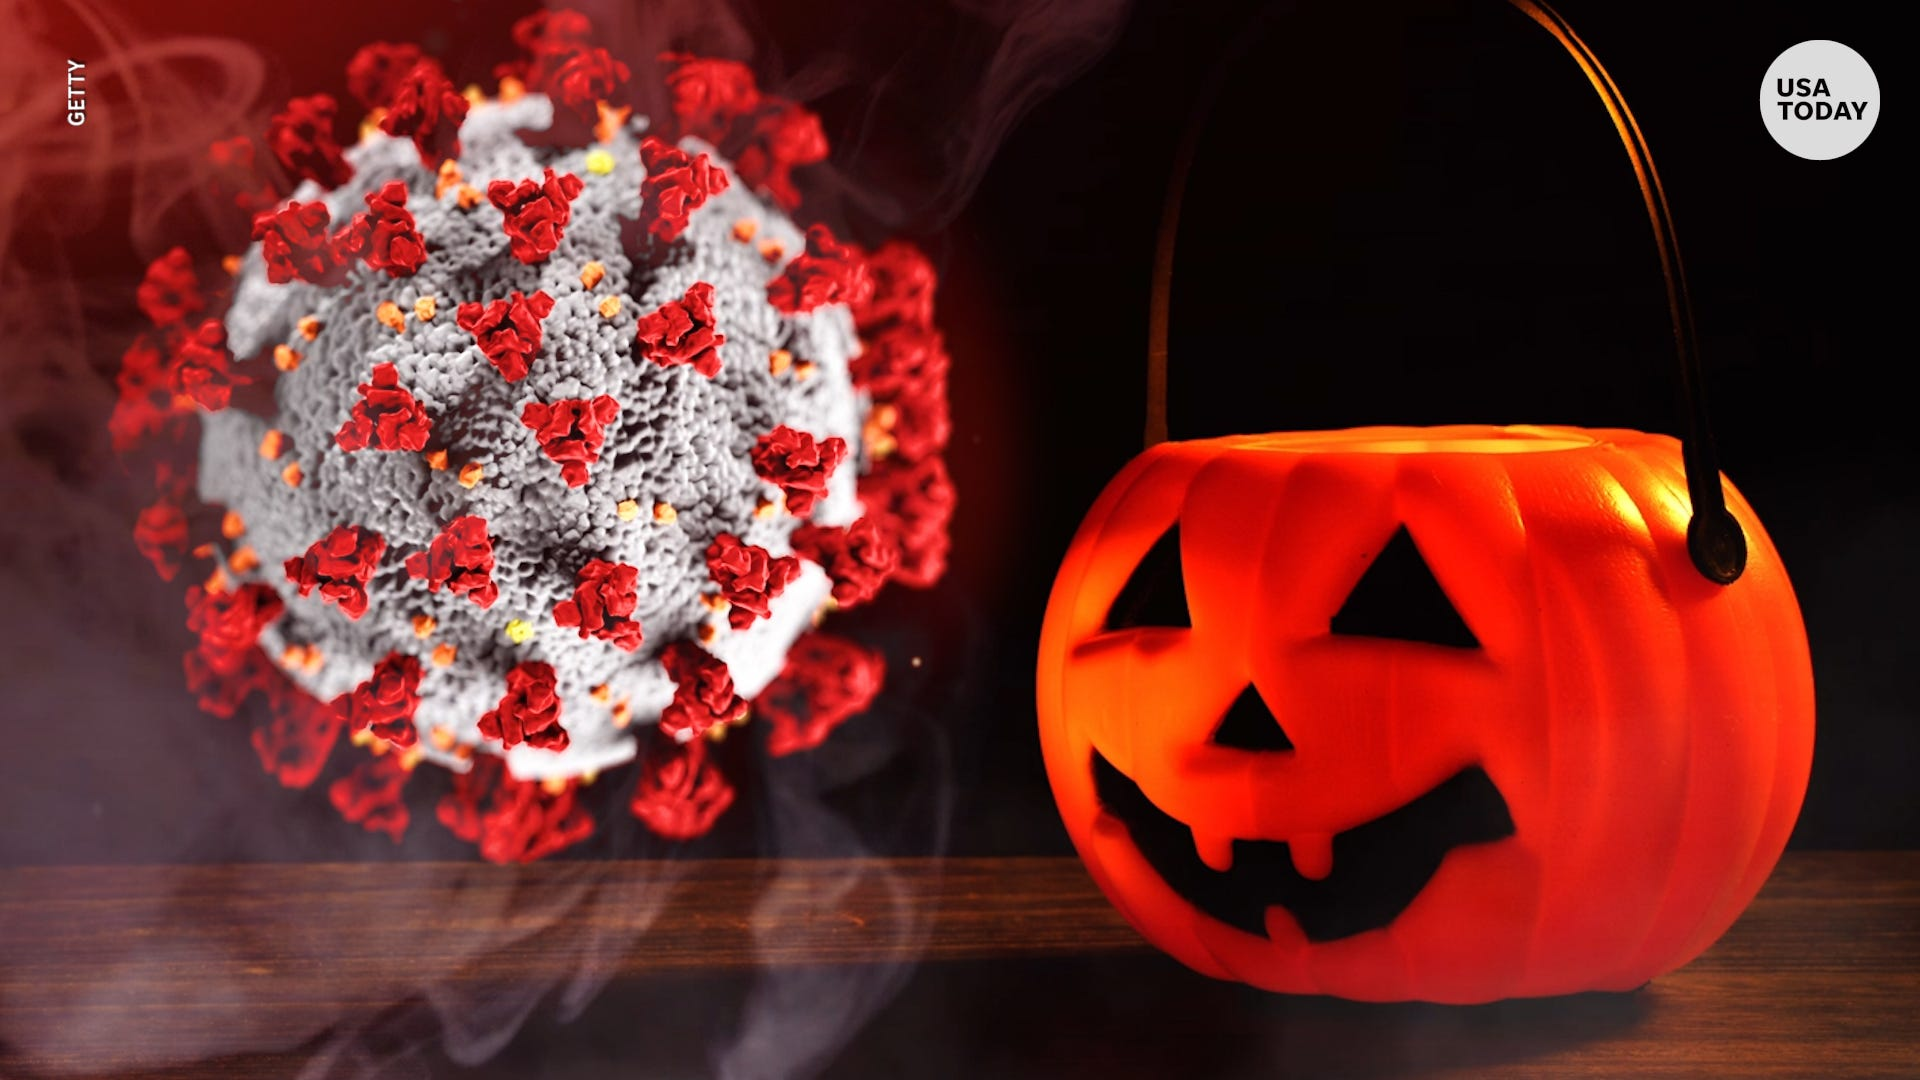 Halloween Date 2020 Usa COVID news: CDC, Halloween; US deaths surpass 200,000; KN95 masks